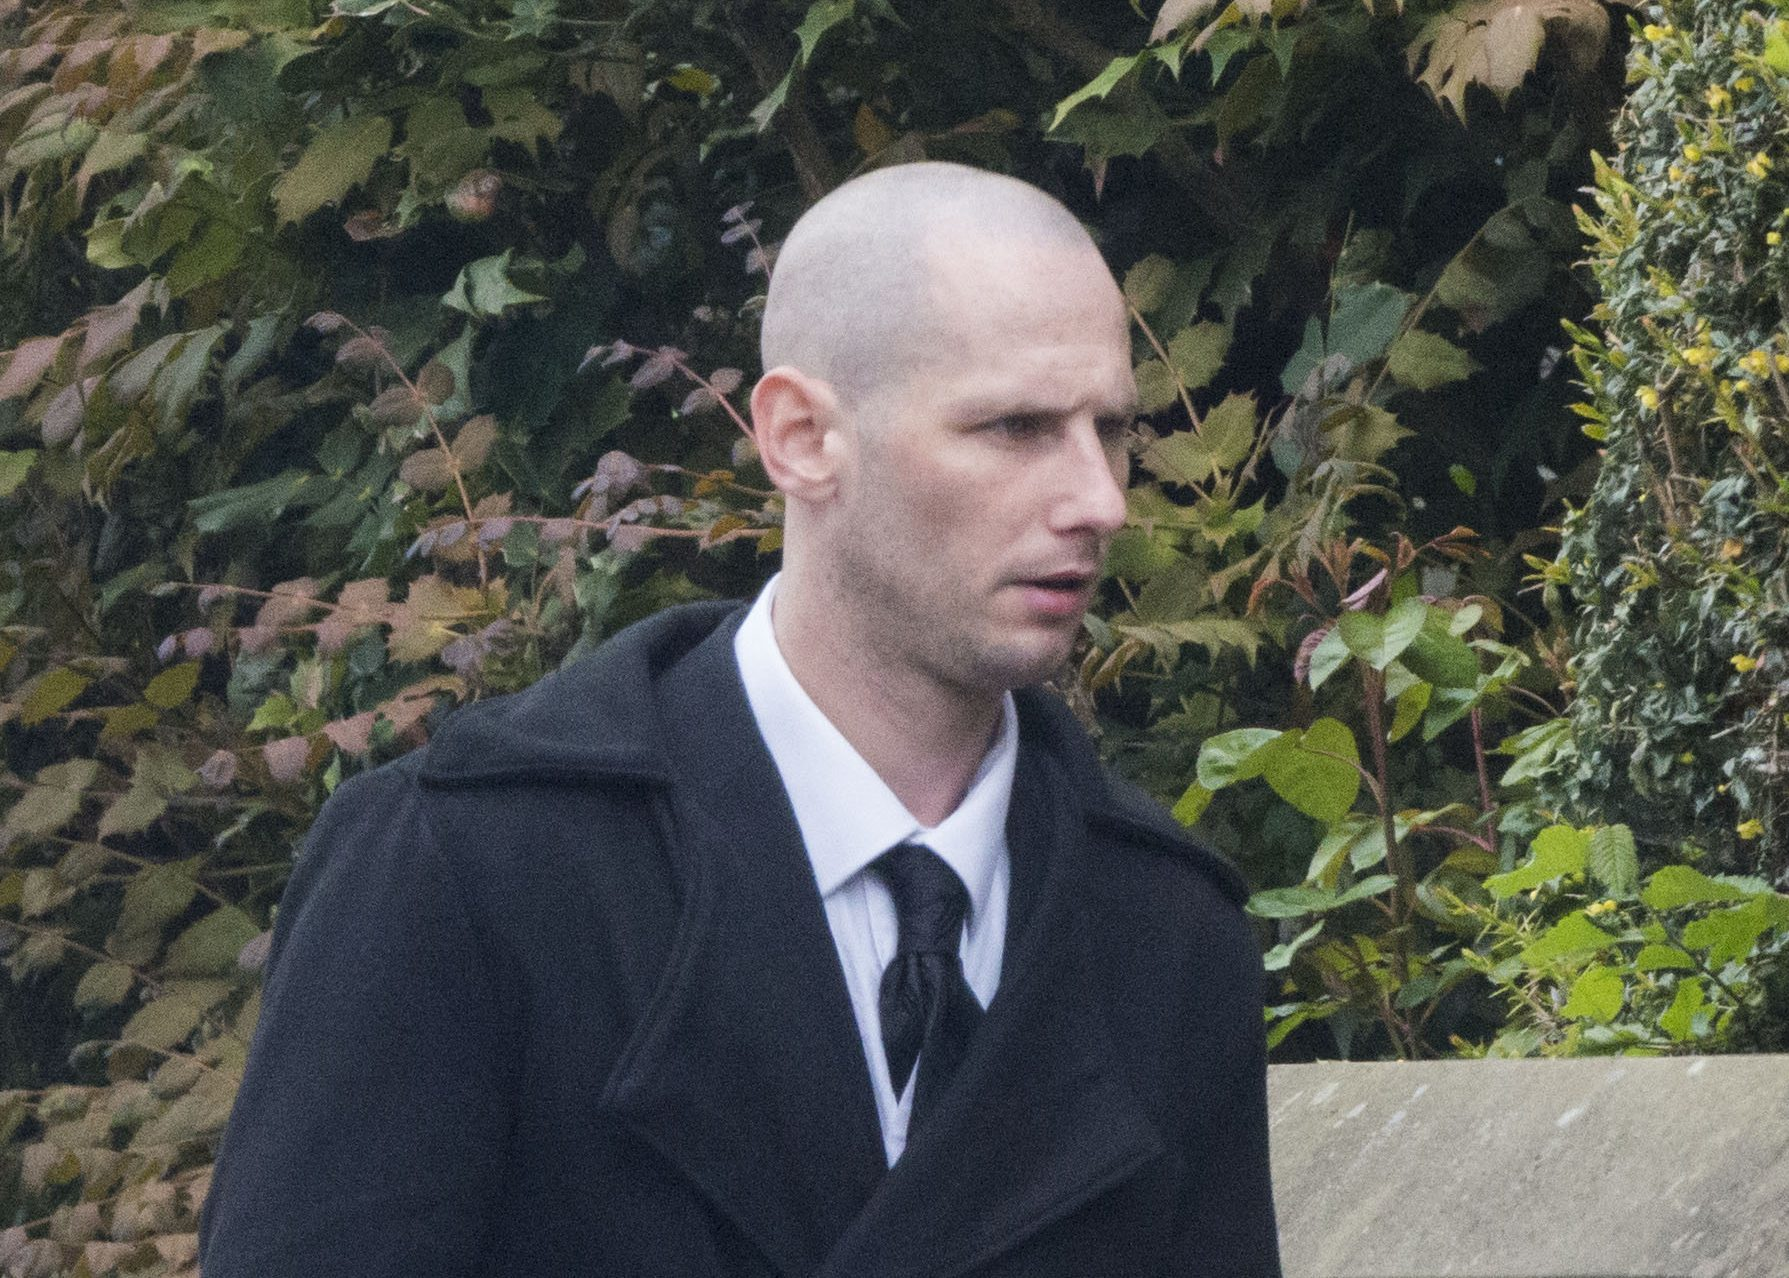 James Dutracy has been jailed for 18 months.